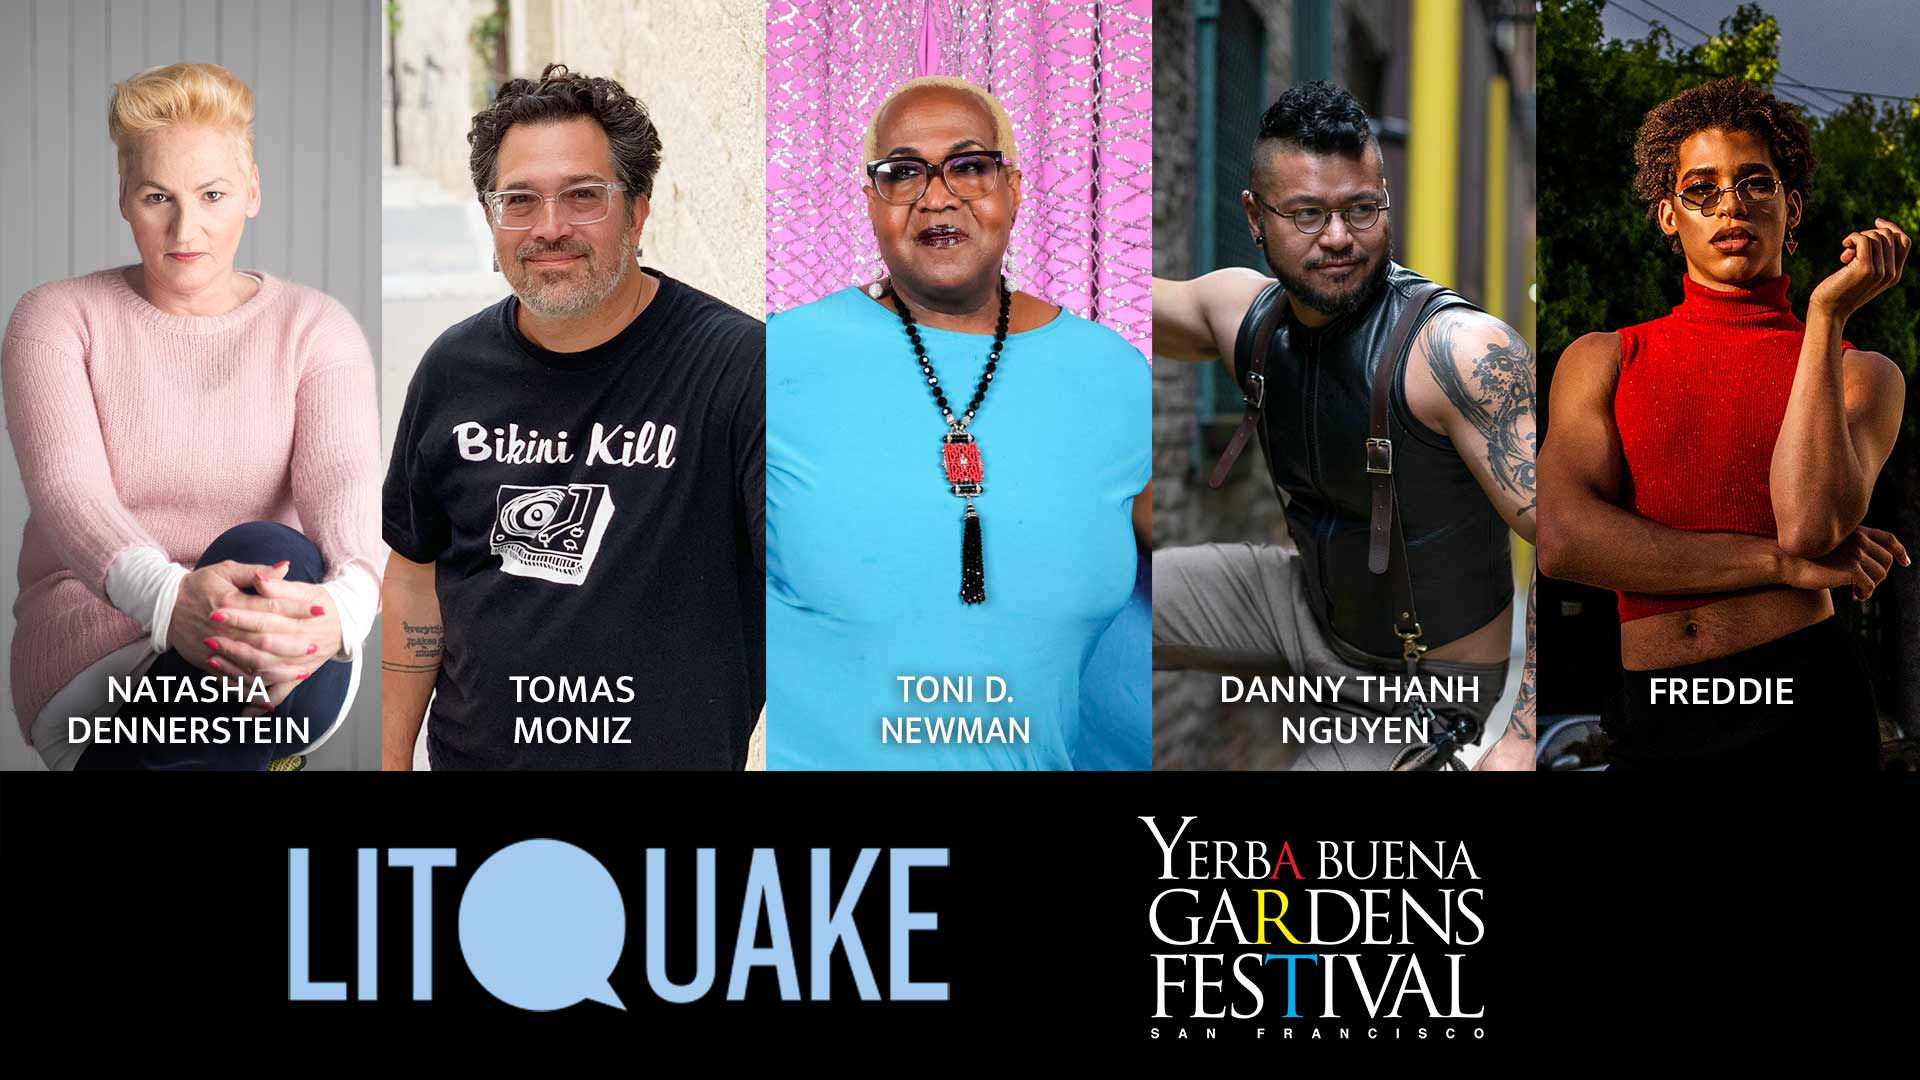 Photos of Natasha Dennerstein, Tomas Moniz, Toni D. Newman, Danny Thanh Nguyen, and Freddie. Presented by Yerba Buena Gardens Festival and Litquake.